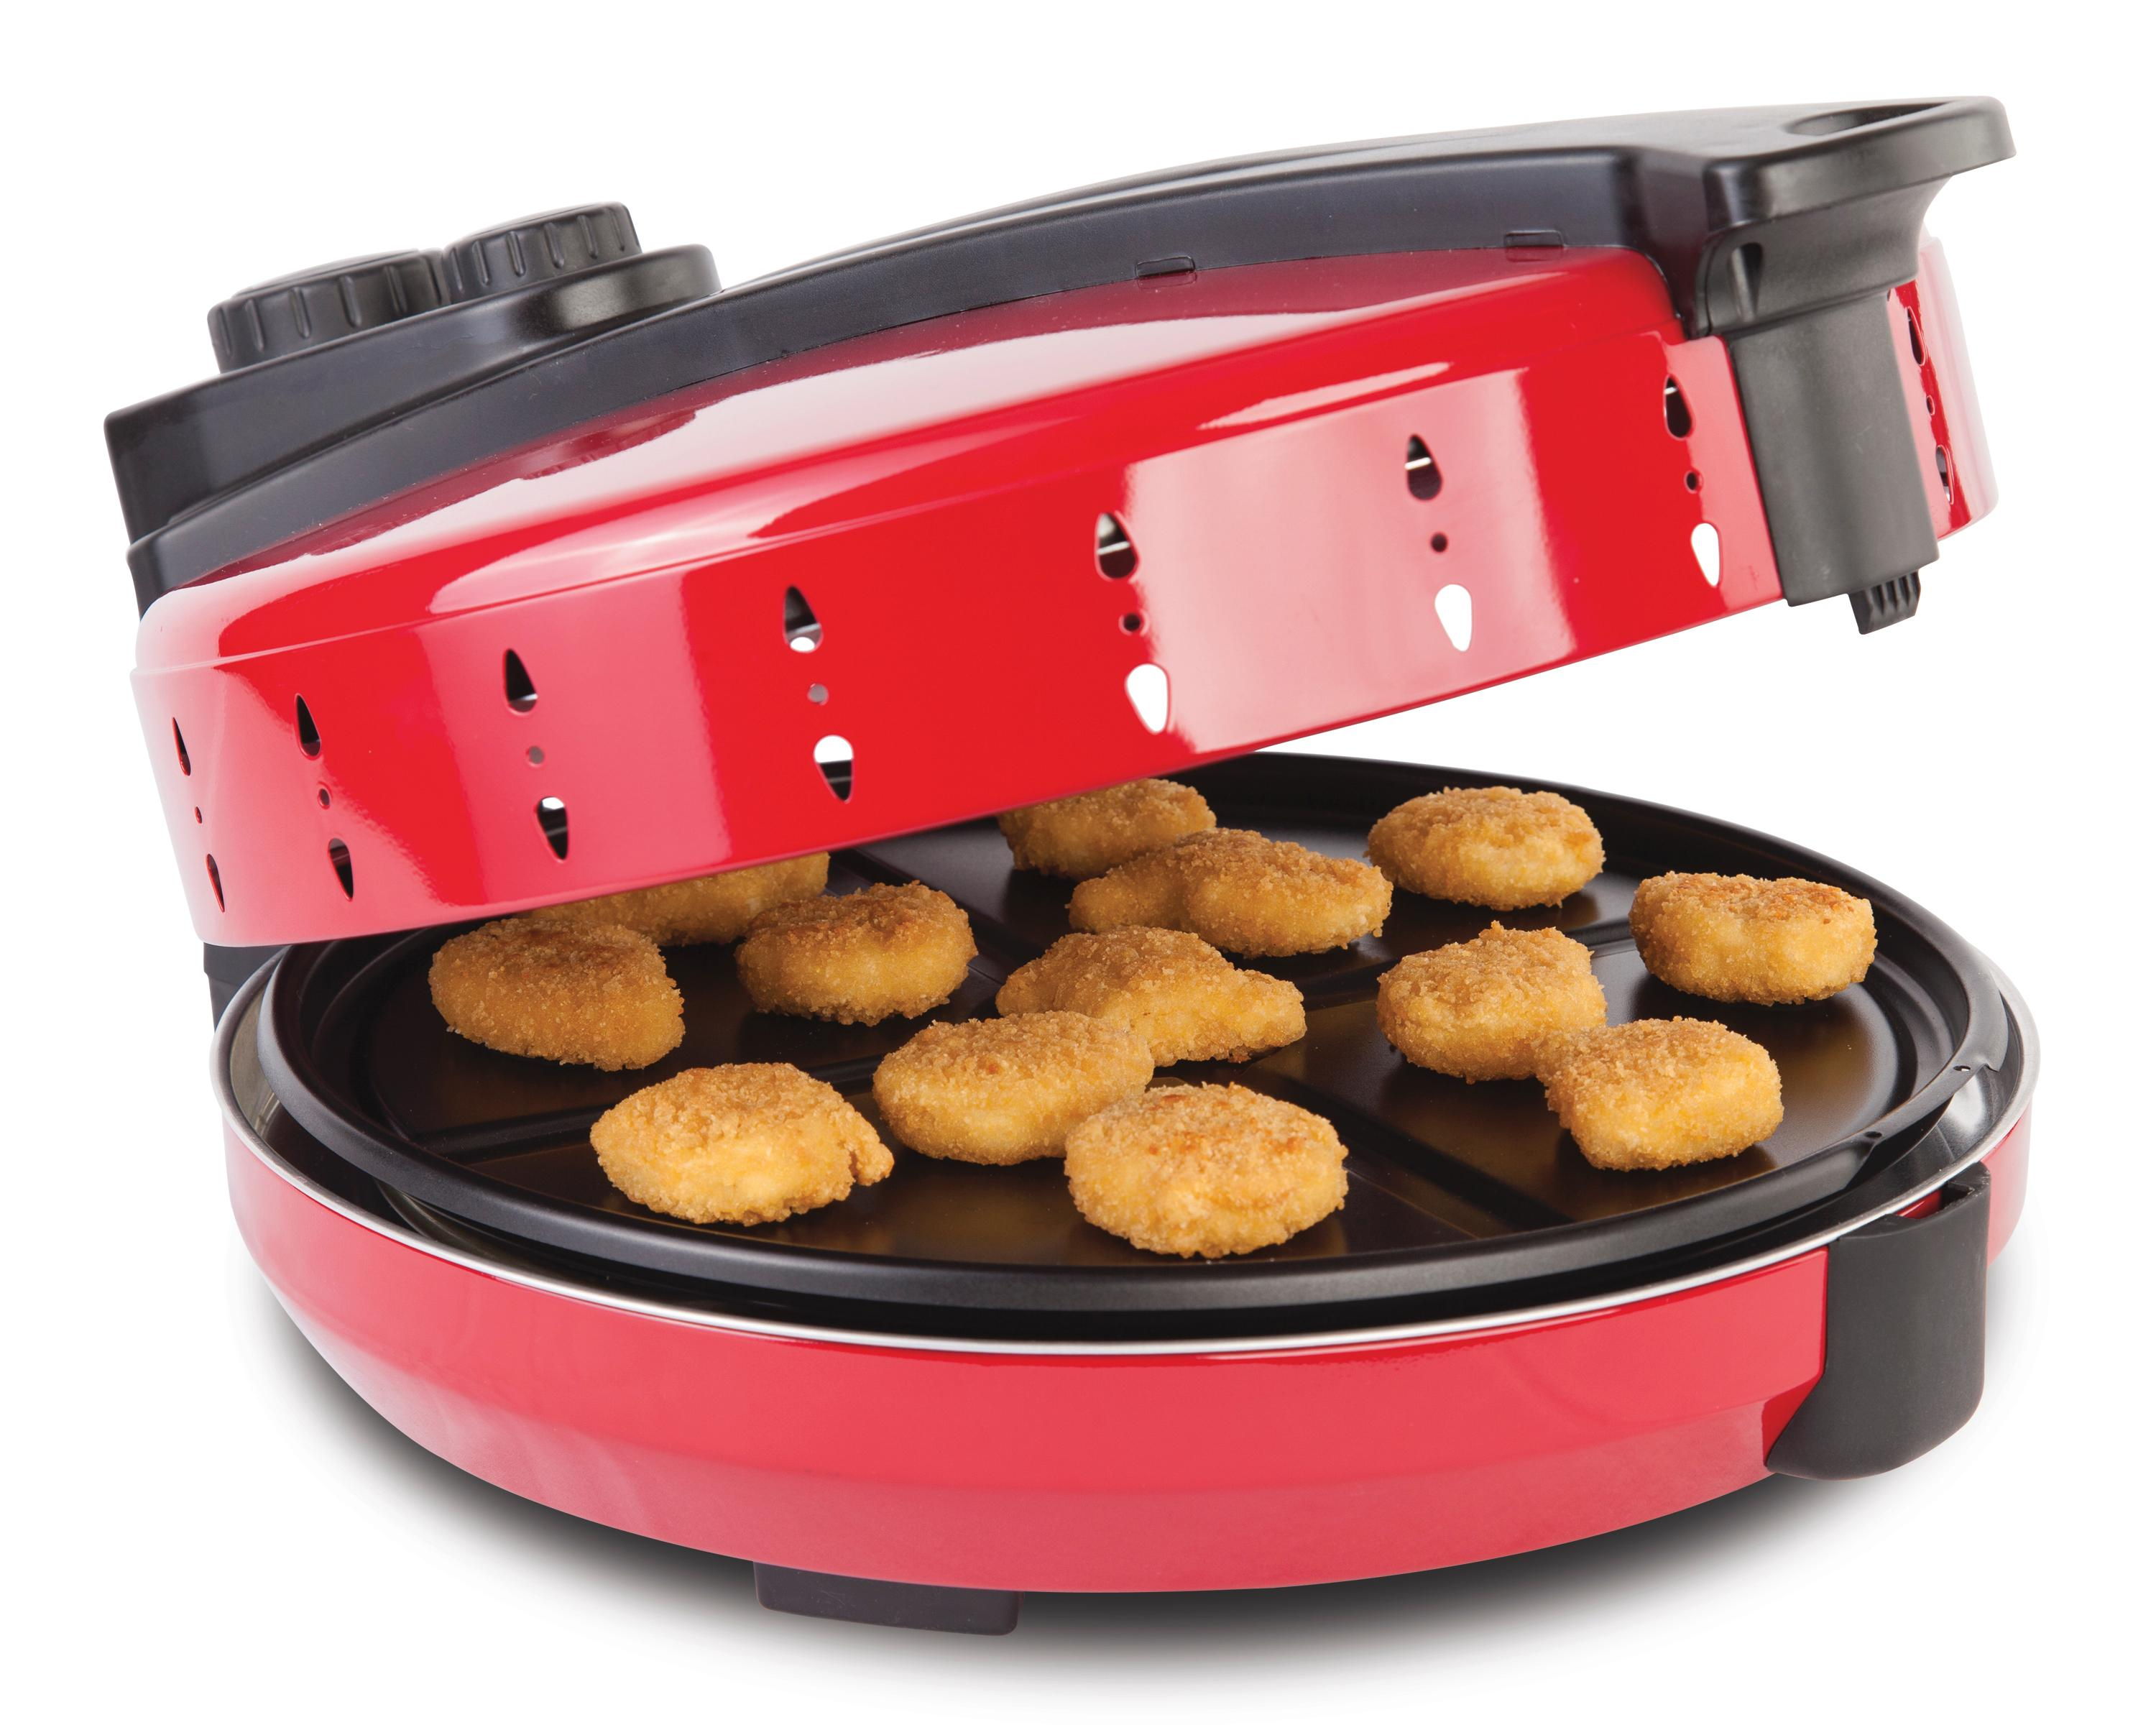 Amazon.com: Hamilton Beach 31700 Pizza Maker: Kitchen Small Appliances